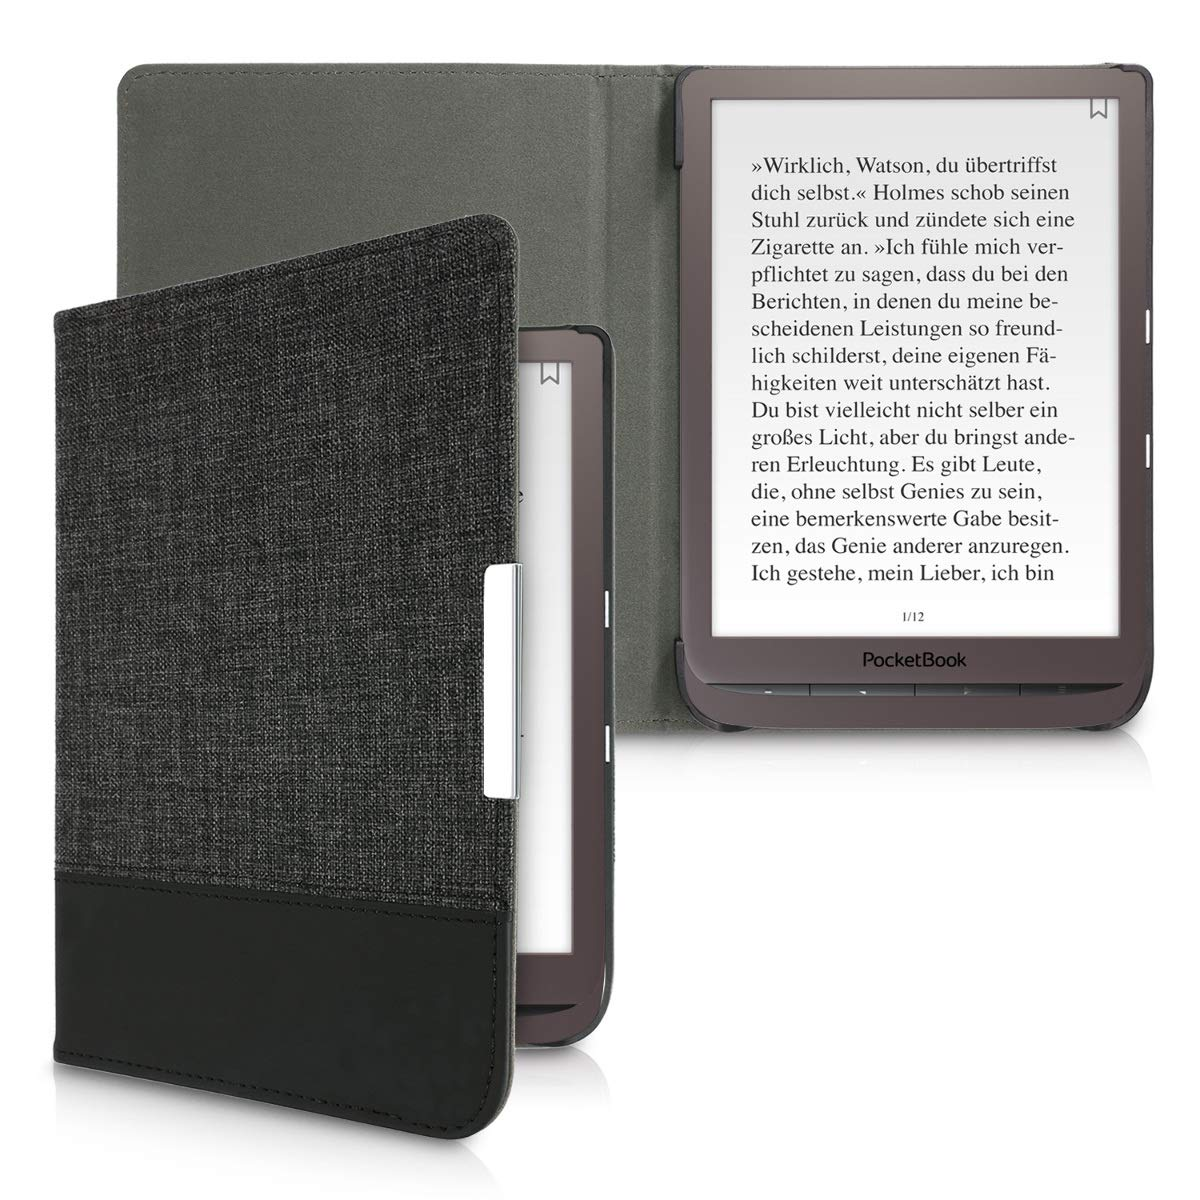 kwmobile Funda para Pocketbook InkPad 3 / 3 Pro: Amazon.es ...